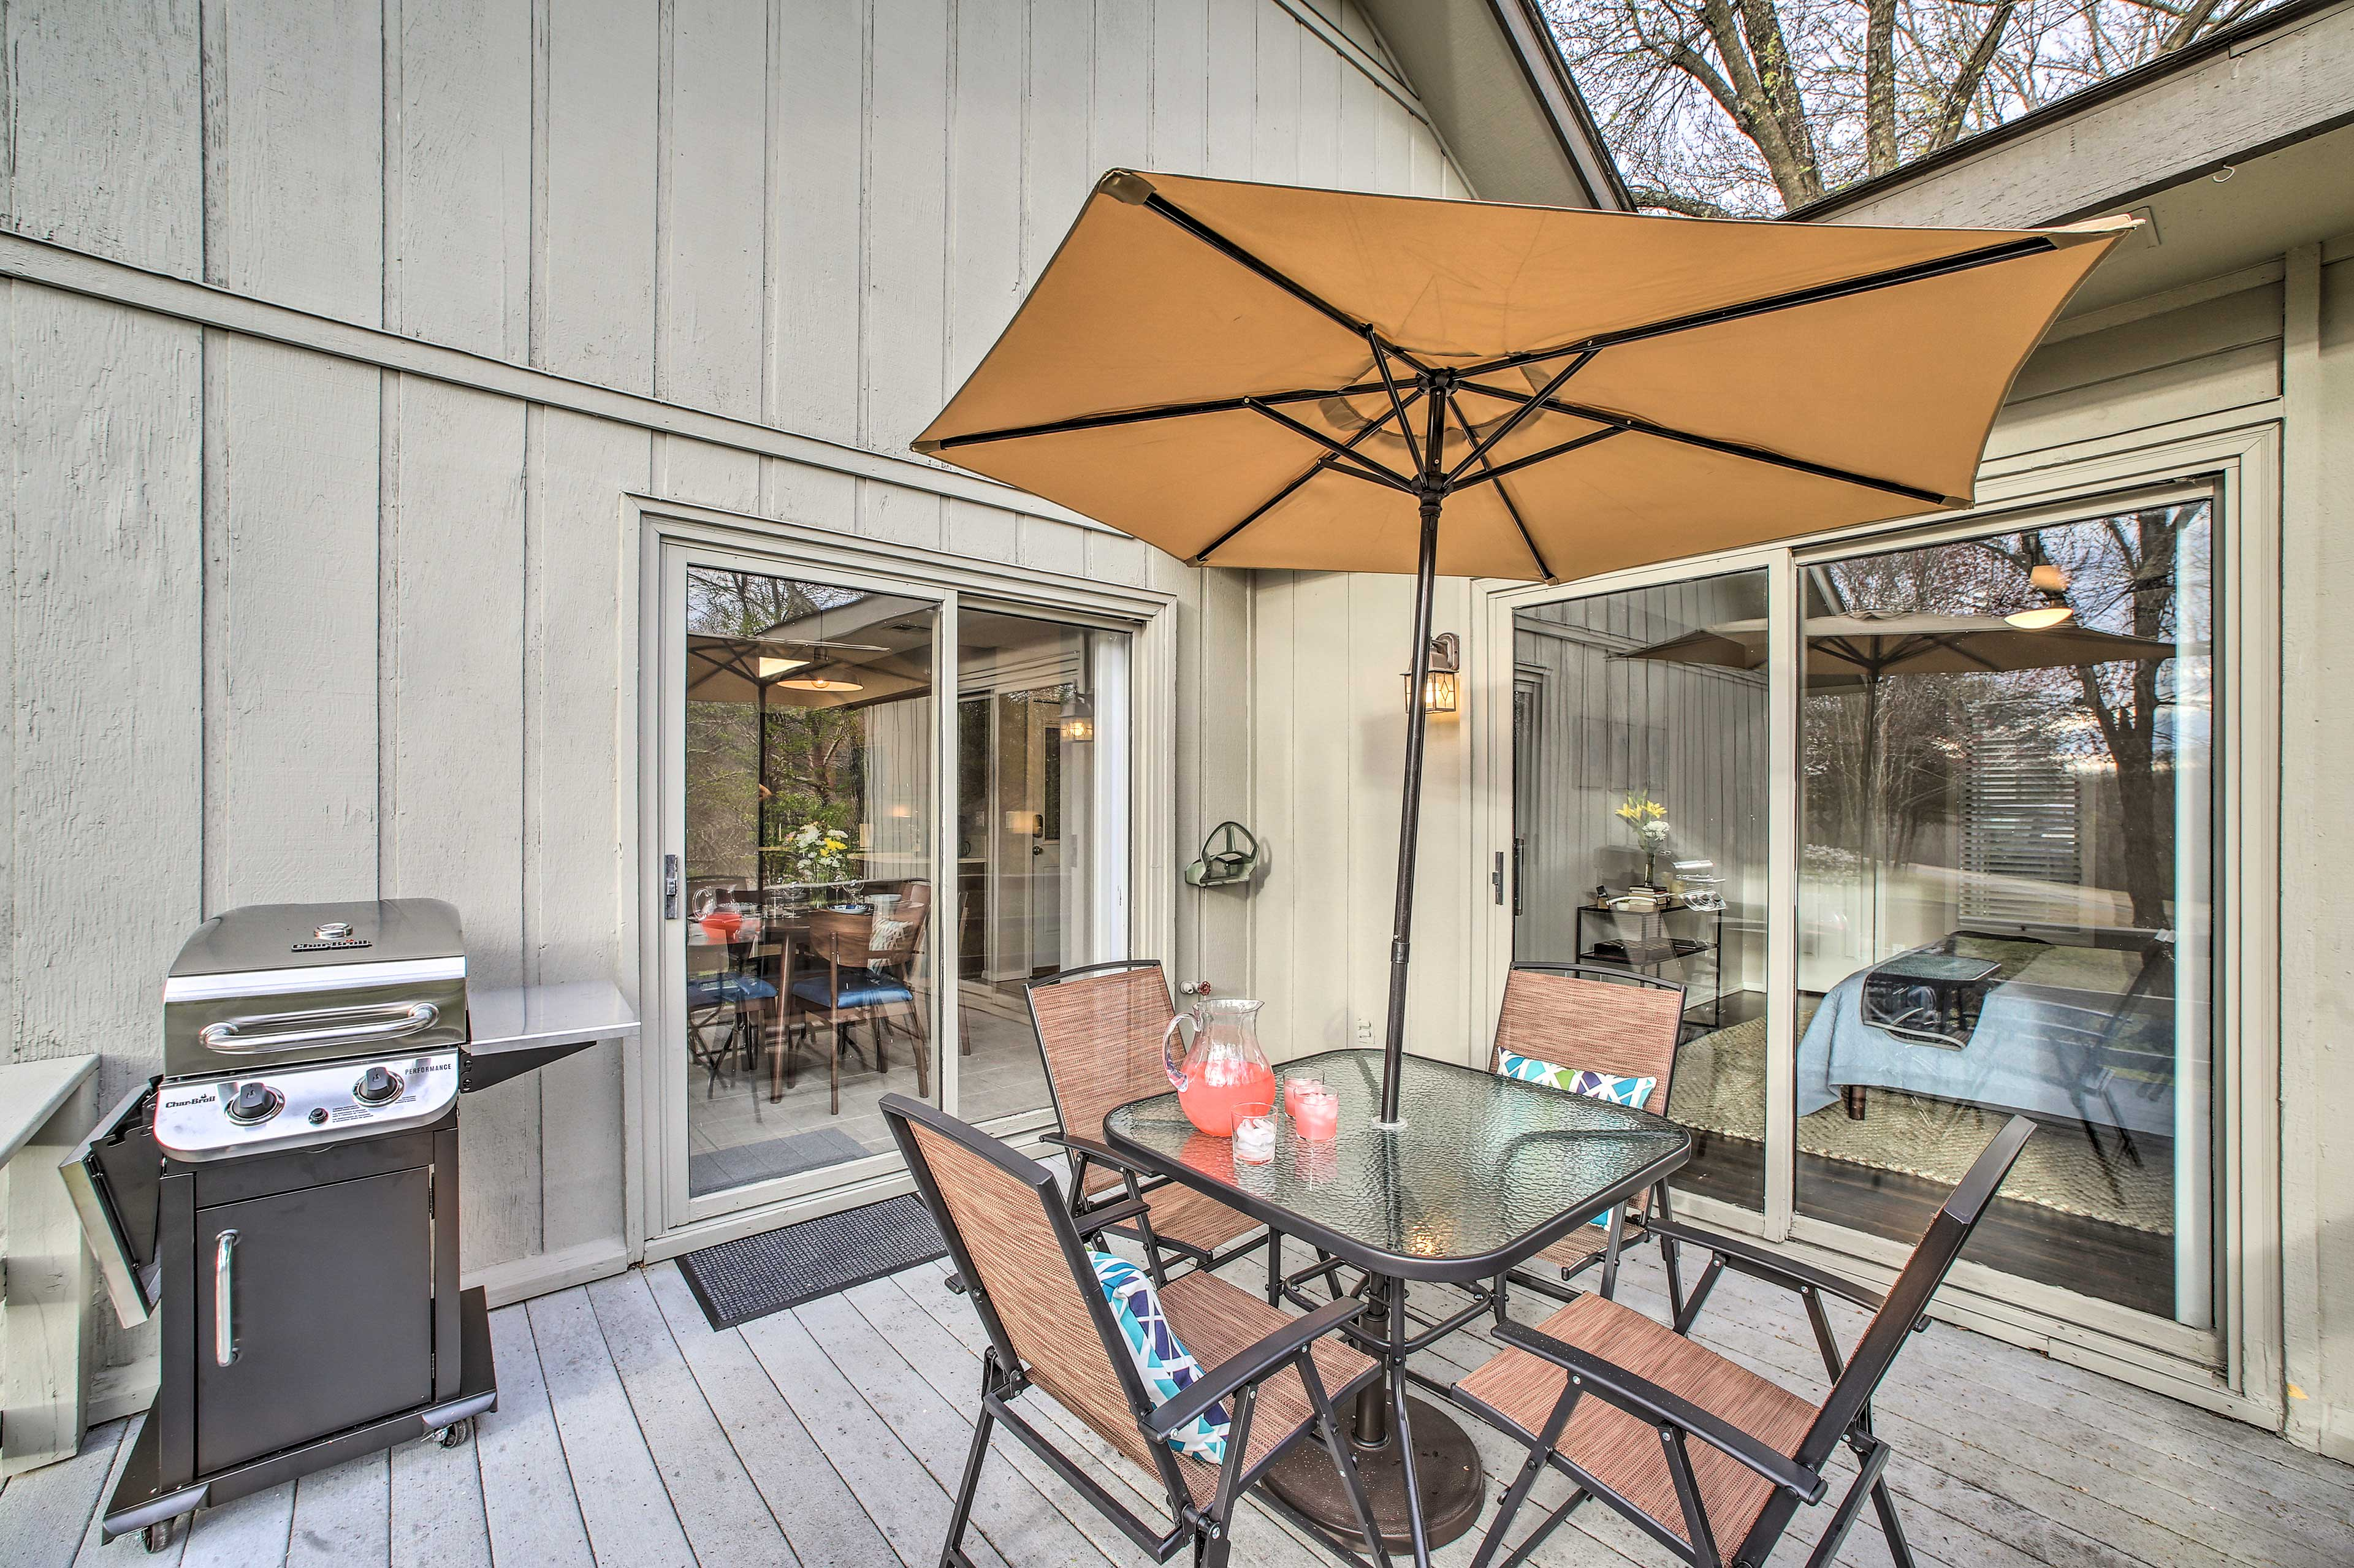 In the summertime, sip cold beverages and grill out on the balcony!